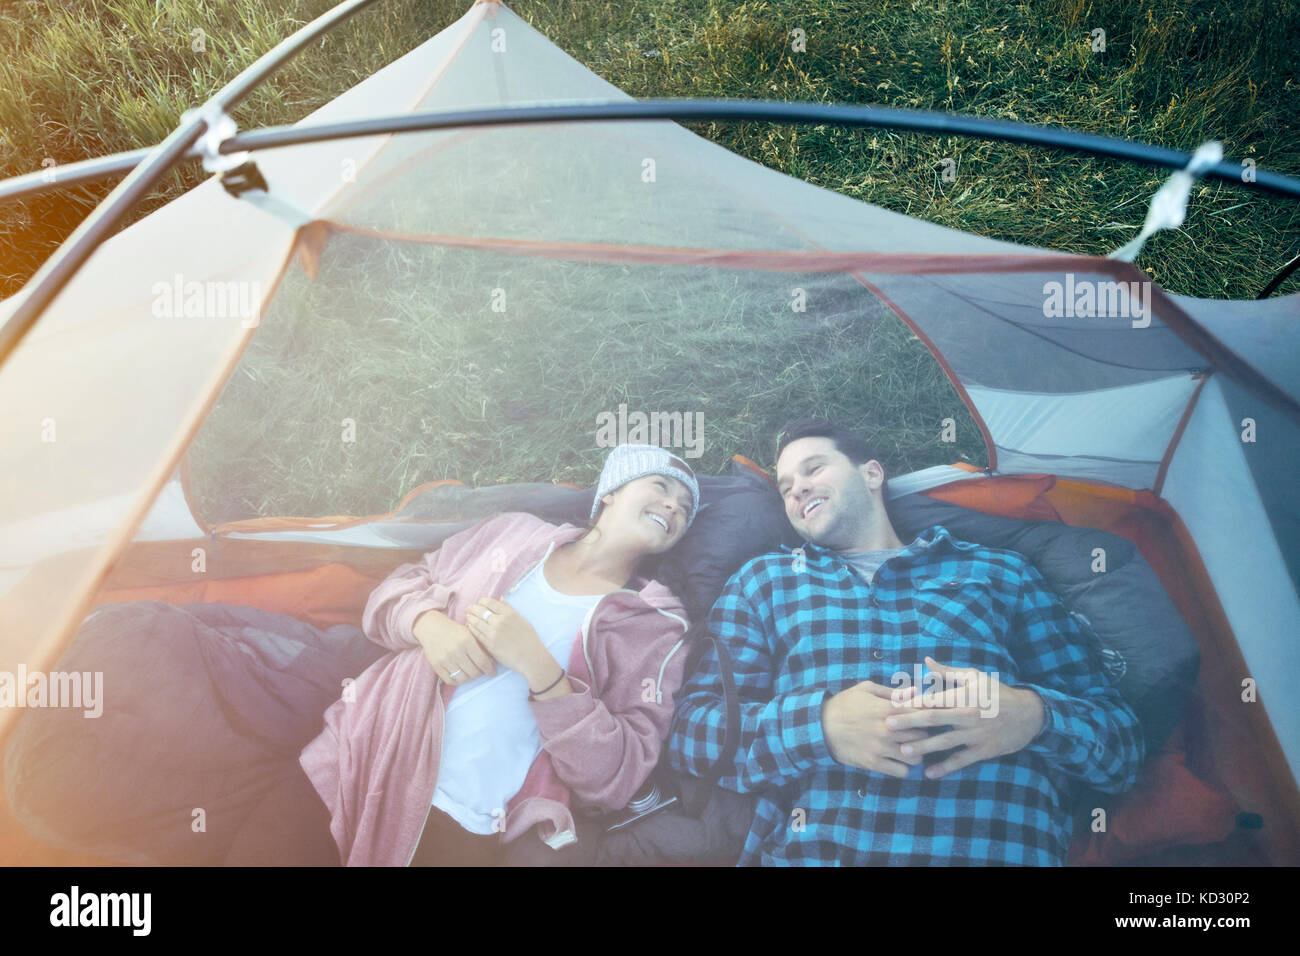 Couple lying in tent, elevated view - Stock Image